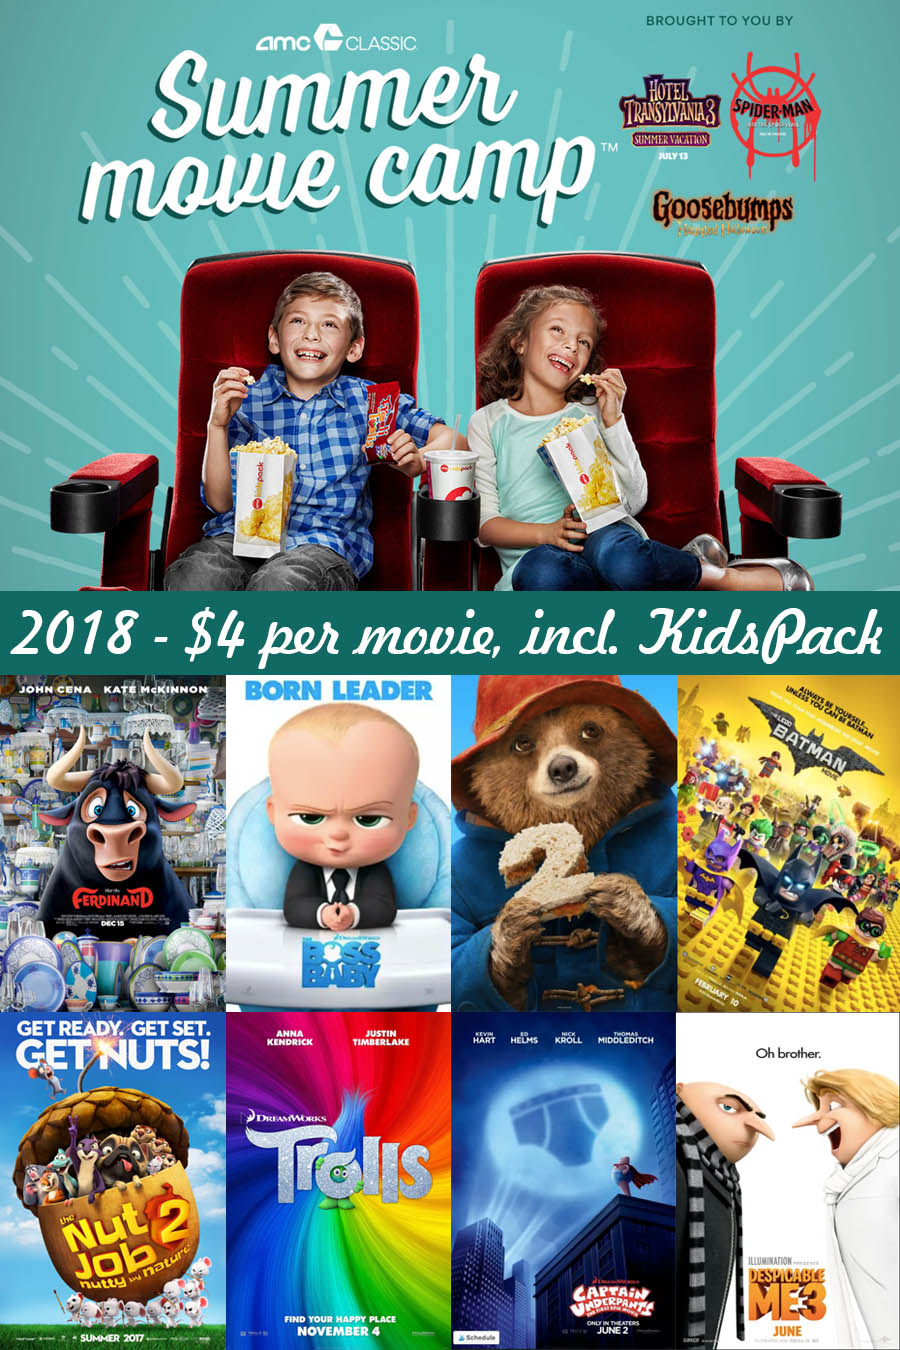 2018 Summer Movie Deals — AMC Summer Movie Camp